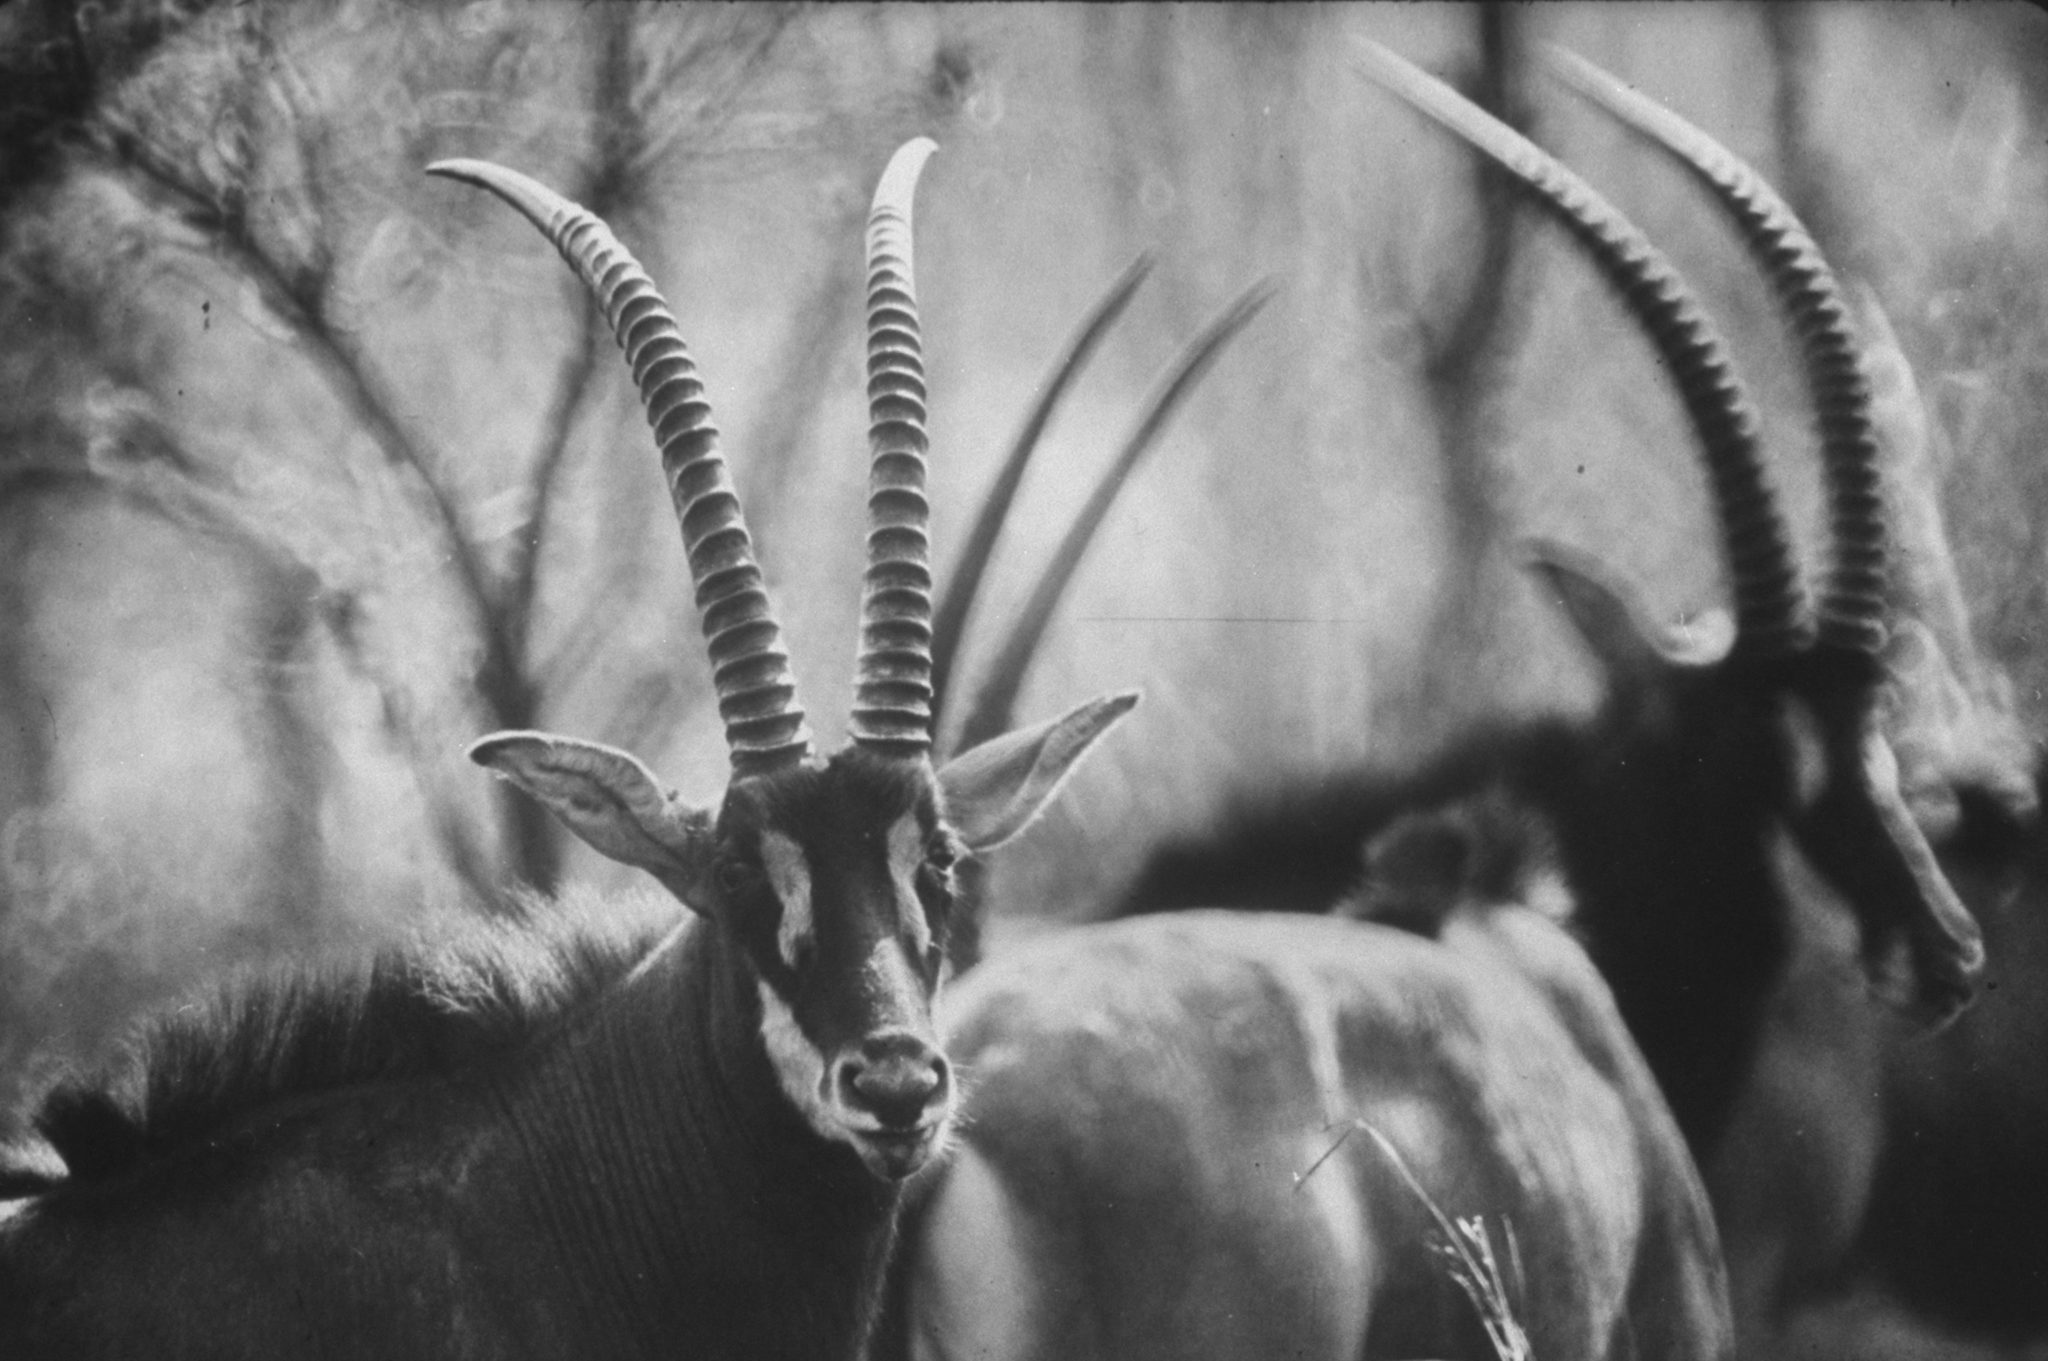 Giant sable antelopes roaming the Luanda game preserve. (Photo by Carlo Bavagnoli/The LIFE Picture Collection © Meredith Corporation)